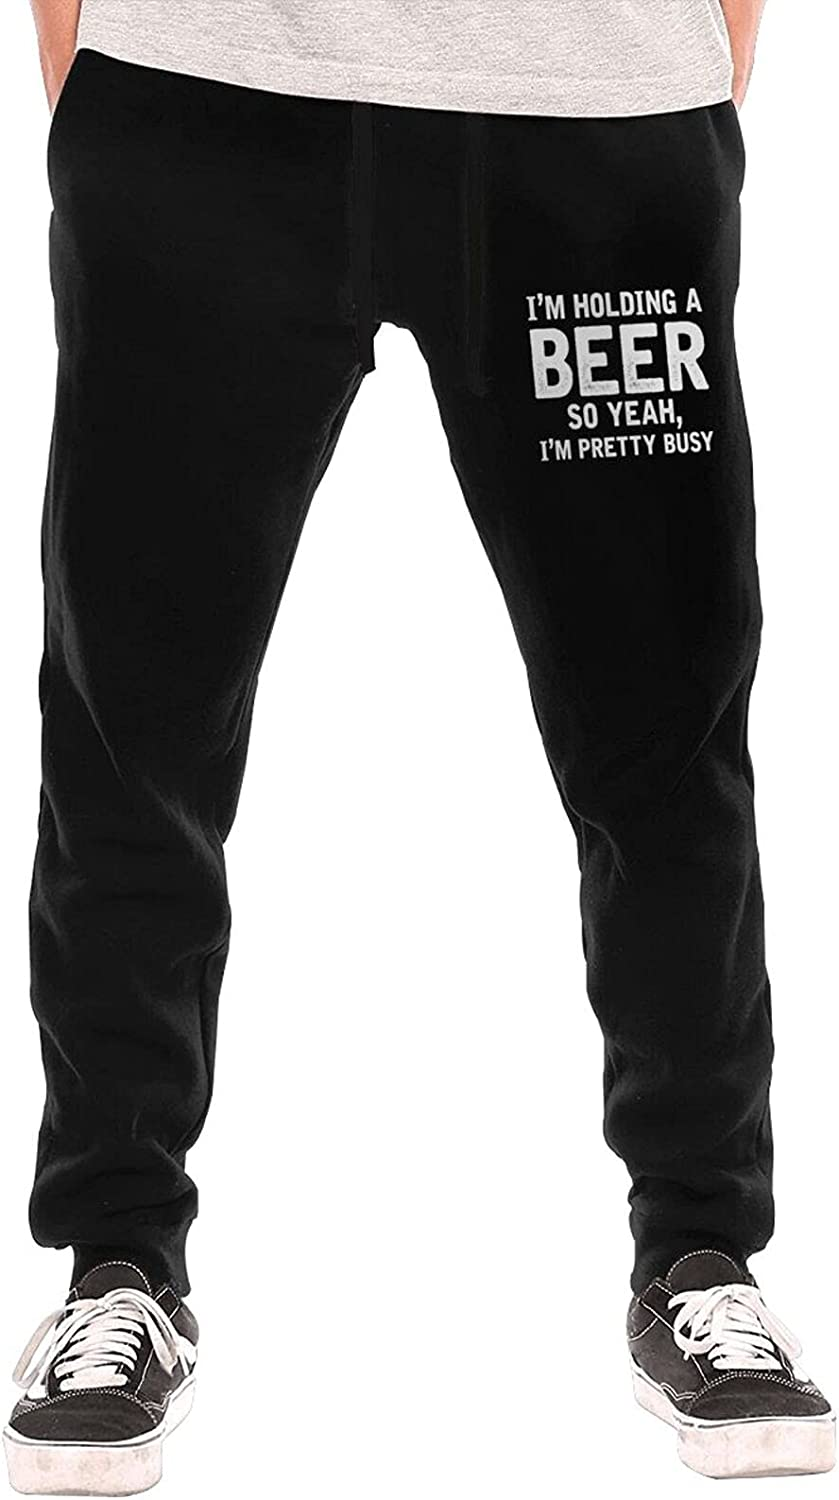 I'm Holding A Beer So Yeah Pants Safety and trust Busy Men' latest Pretty 3D Joggers